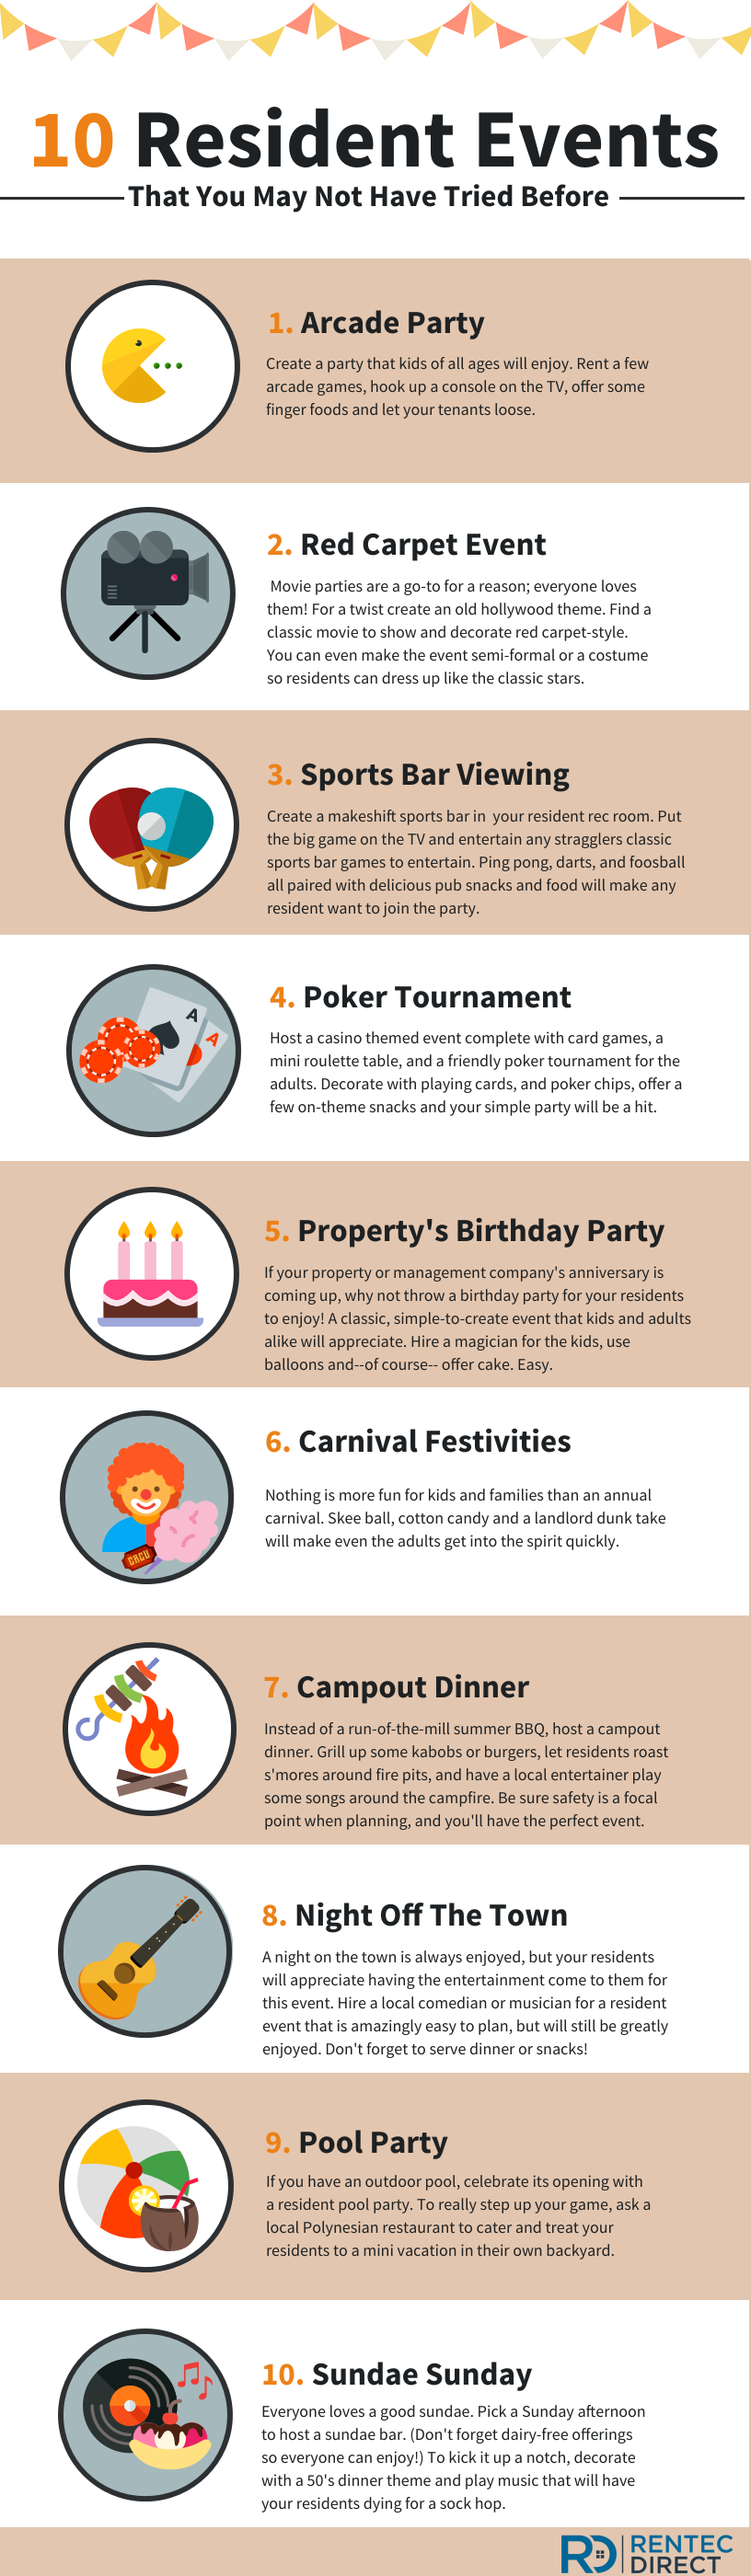 10 Resident Event Ideas That You May Not Have Tried Before Infographic